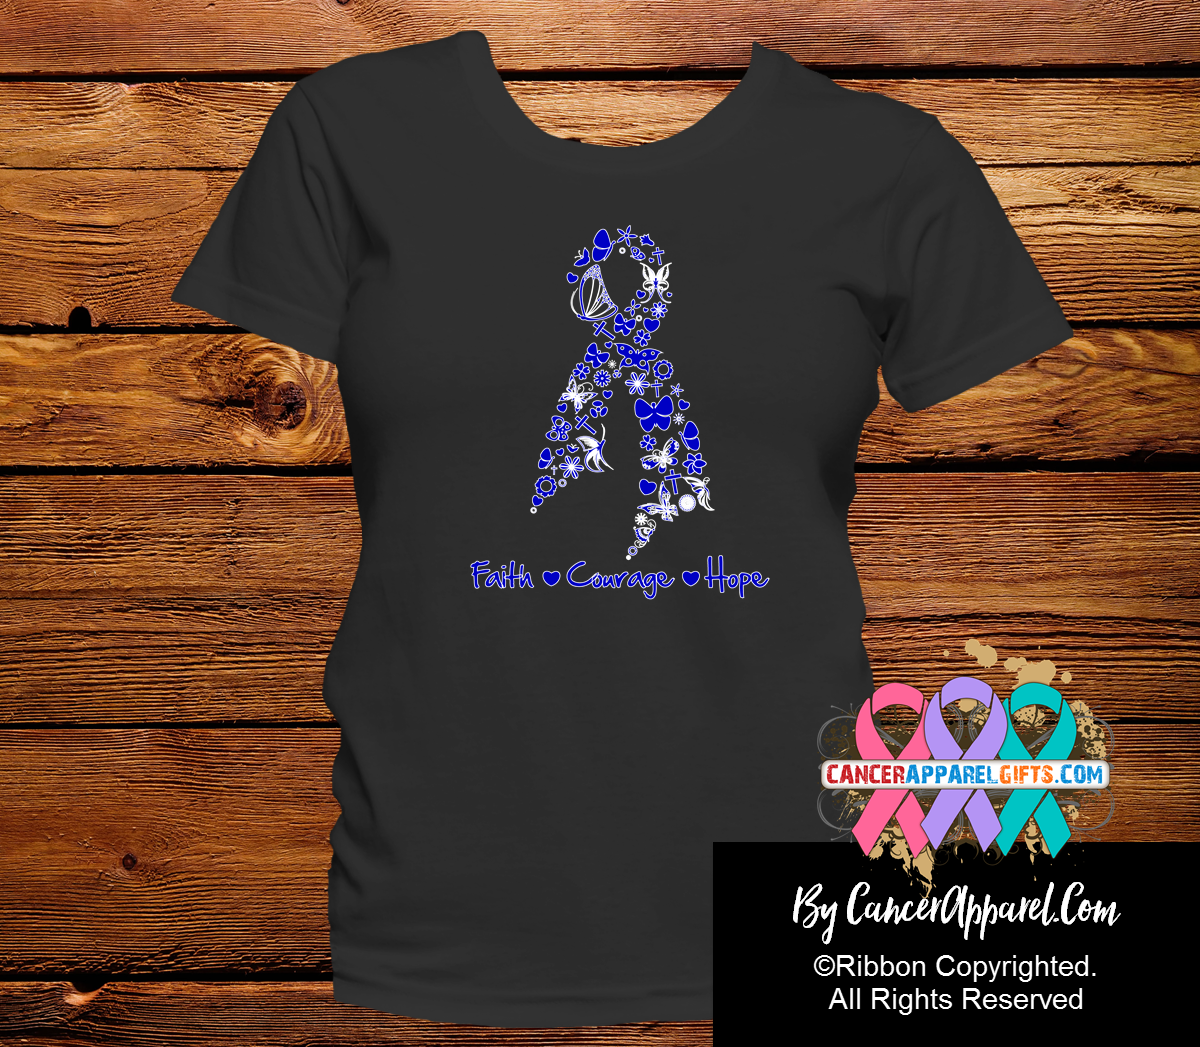 Colon Cancer Faith Courage Hope Shirts - Cancer Apparel and Gifts